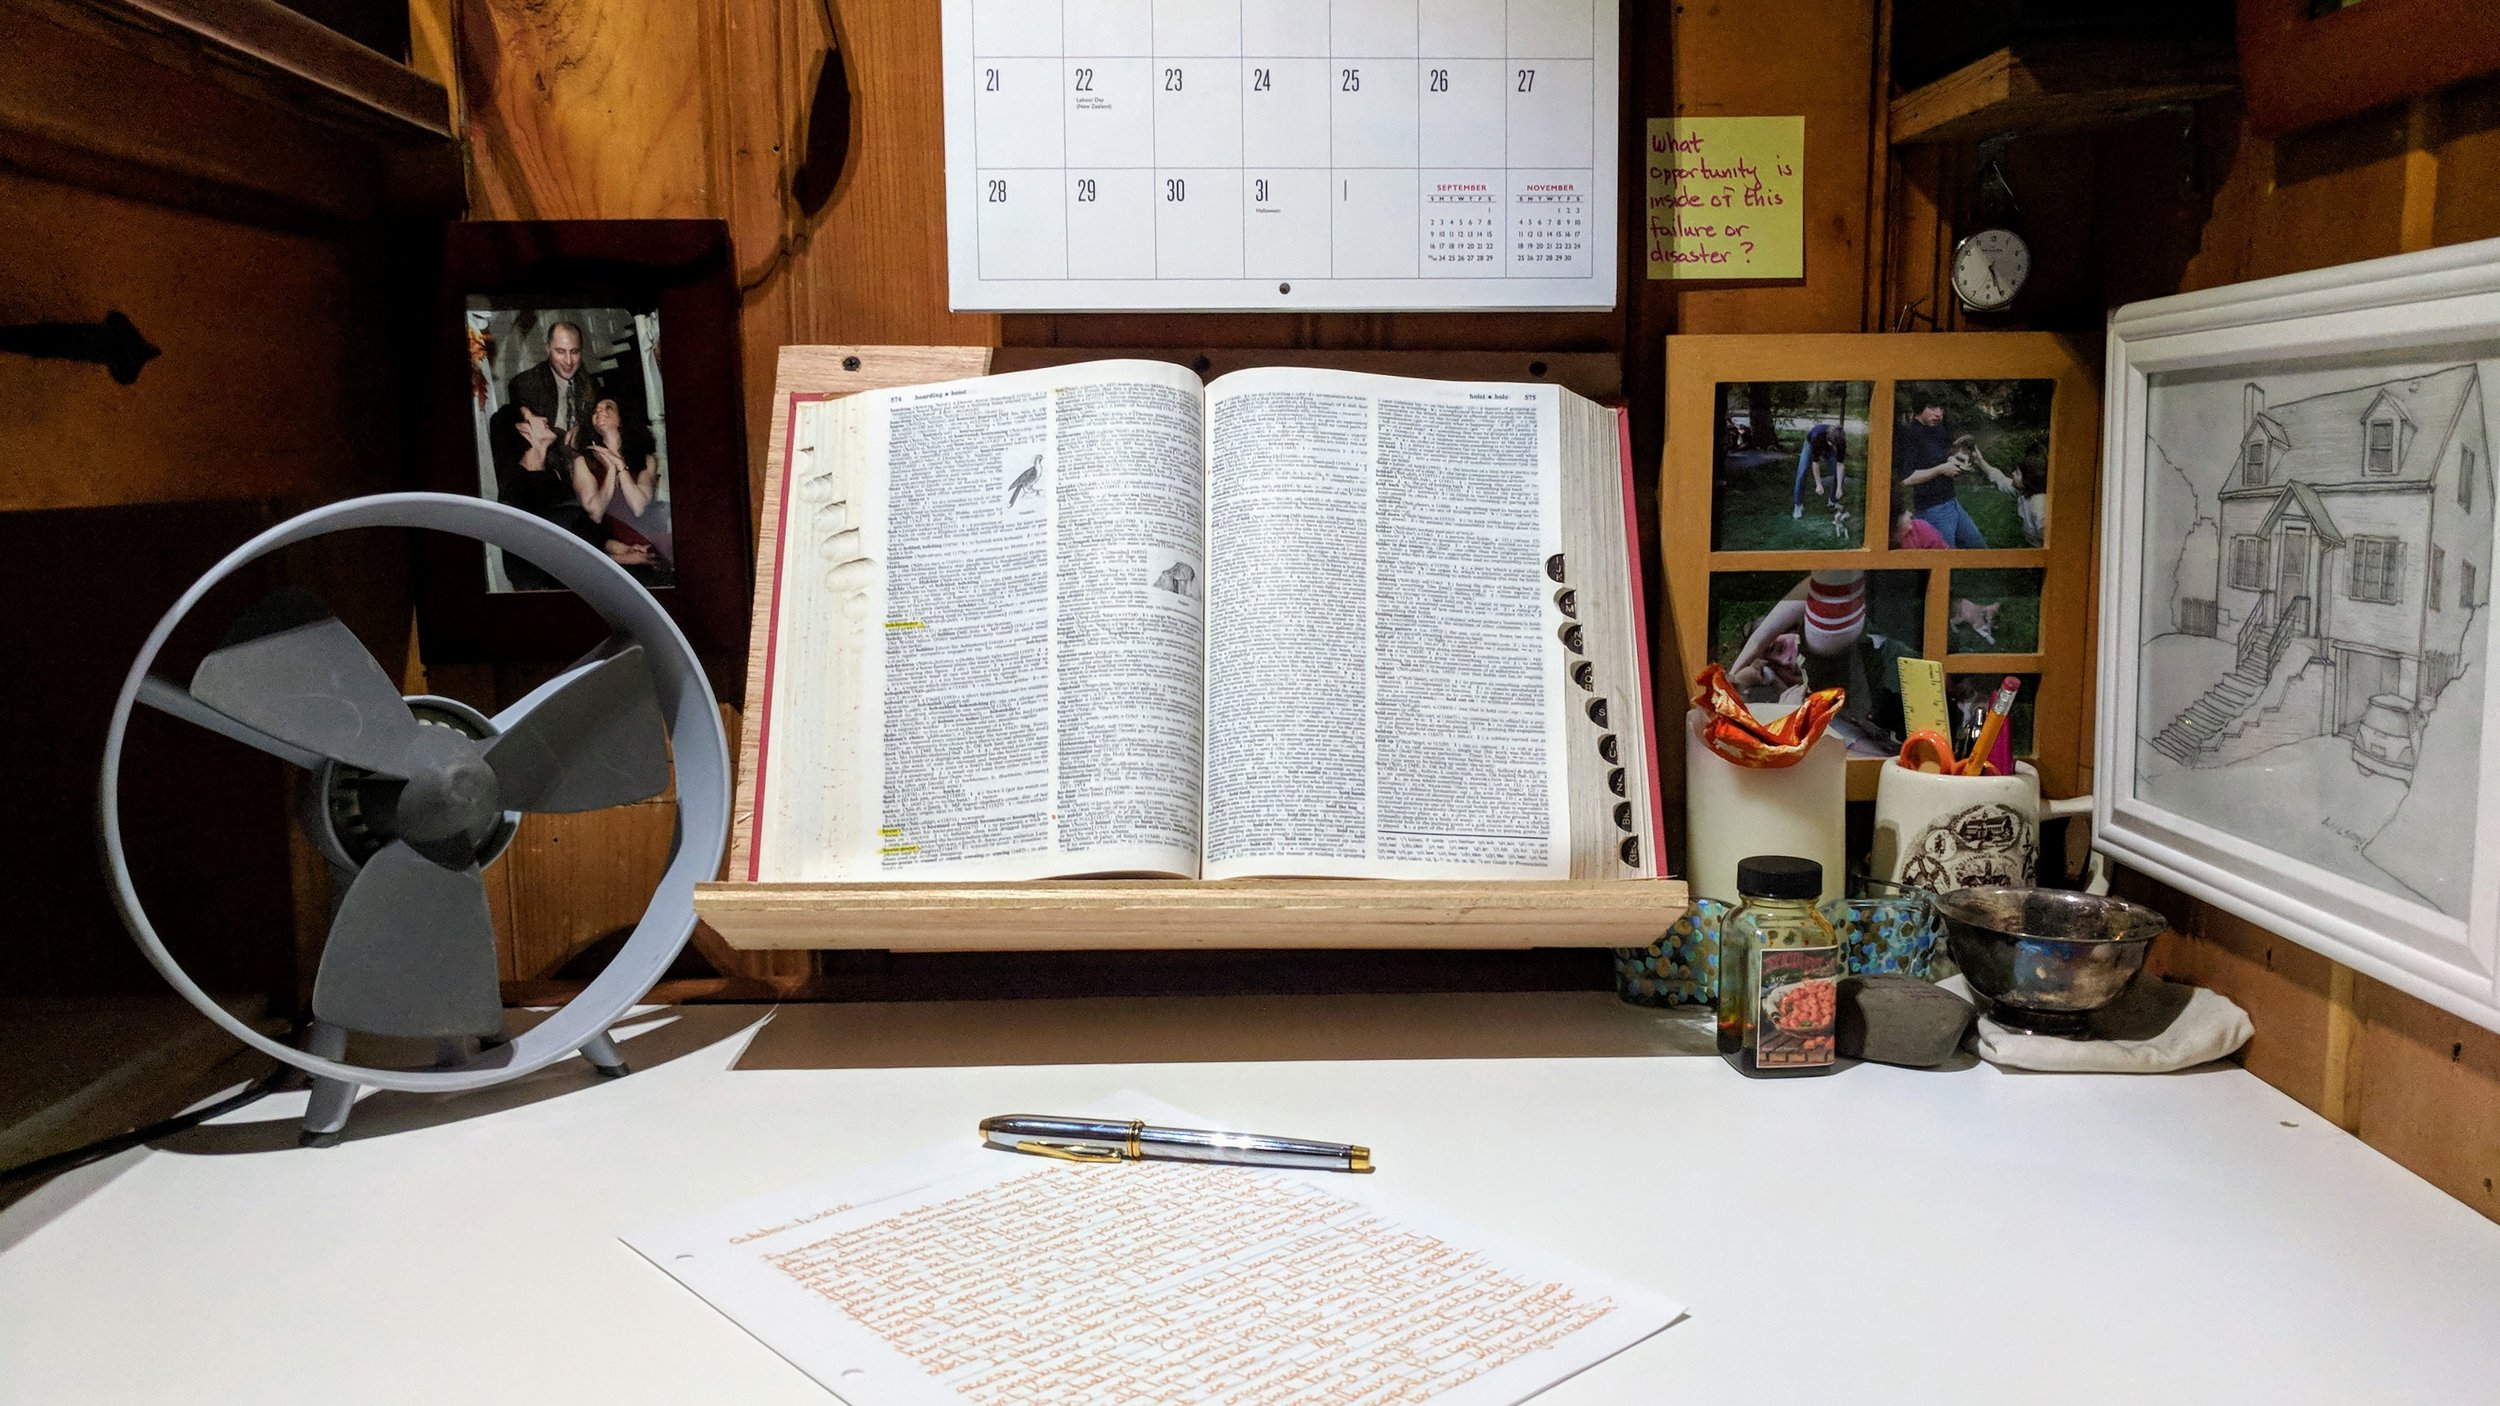 My comfy little writing nook. Dictionary front and center.